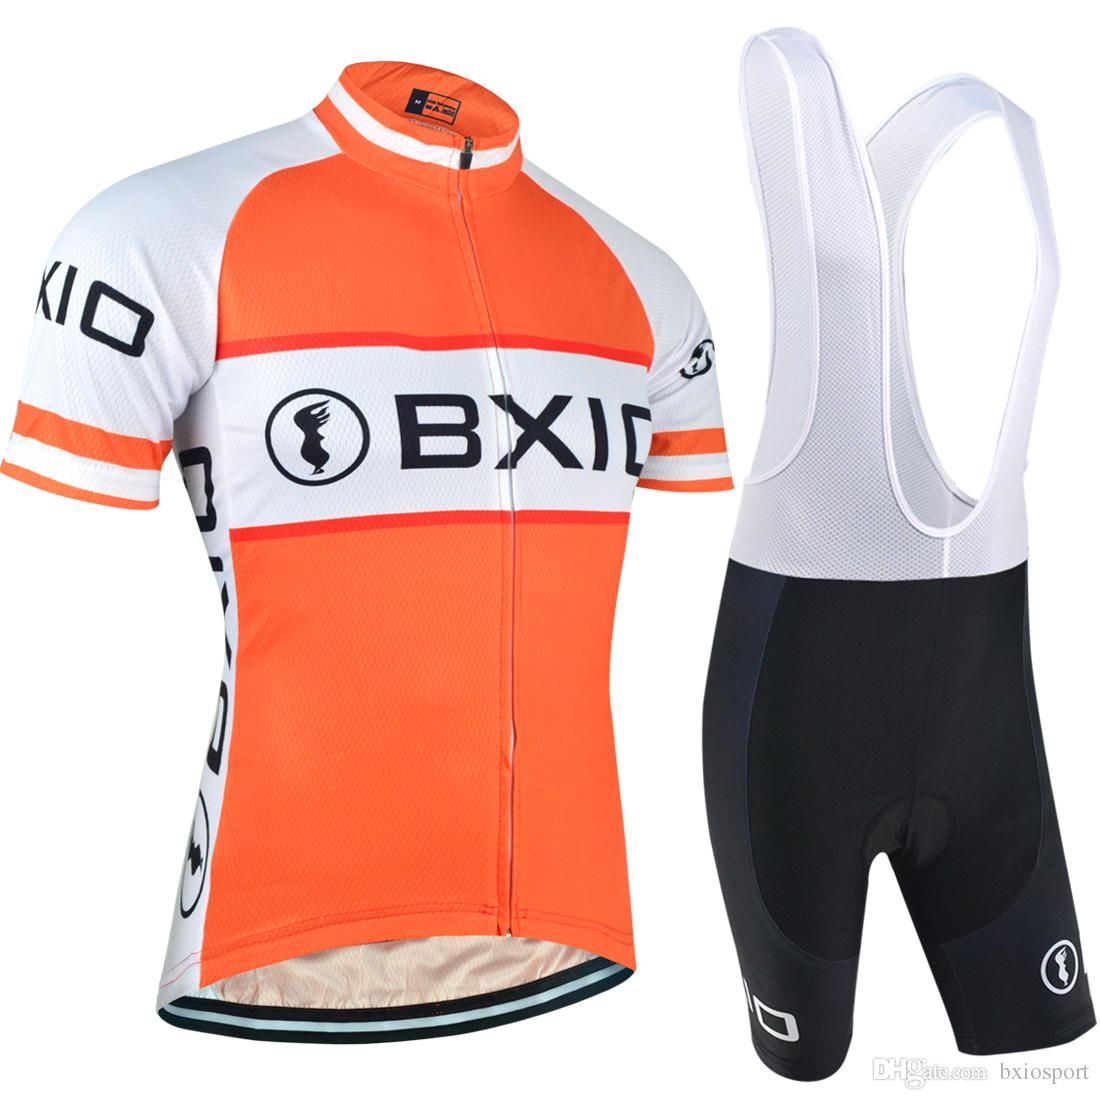 BXIO Brand Cycling Jerseys Orange Cycle Wear Sets Road Cycling Shorts Suits  Unisex Fashion Short Sleeve Lycra Cycling Clothing BX 0209O014 Merino  Cycling ... 99c26345e